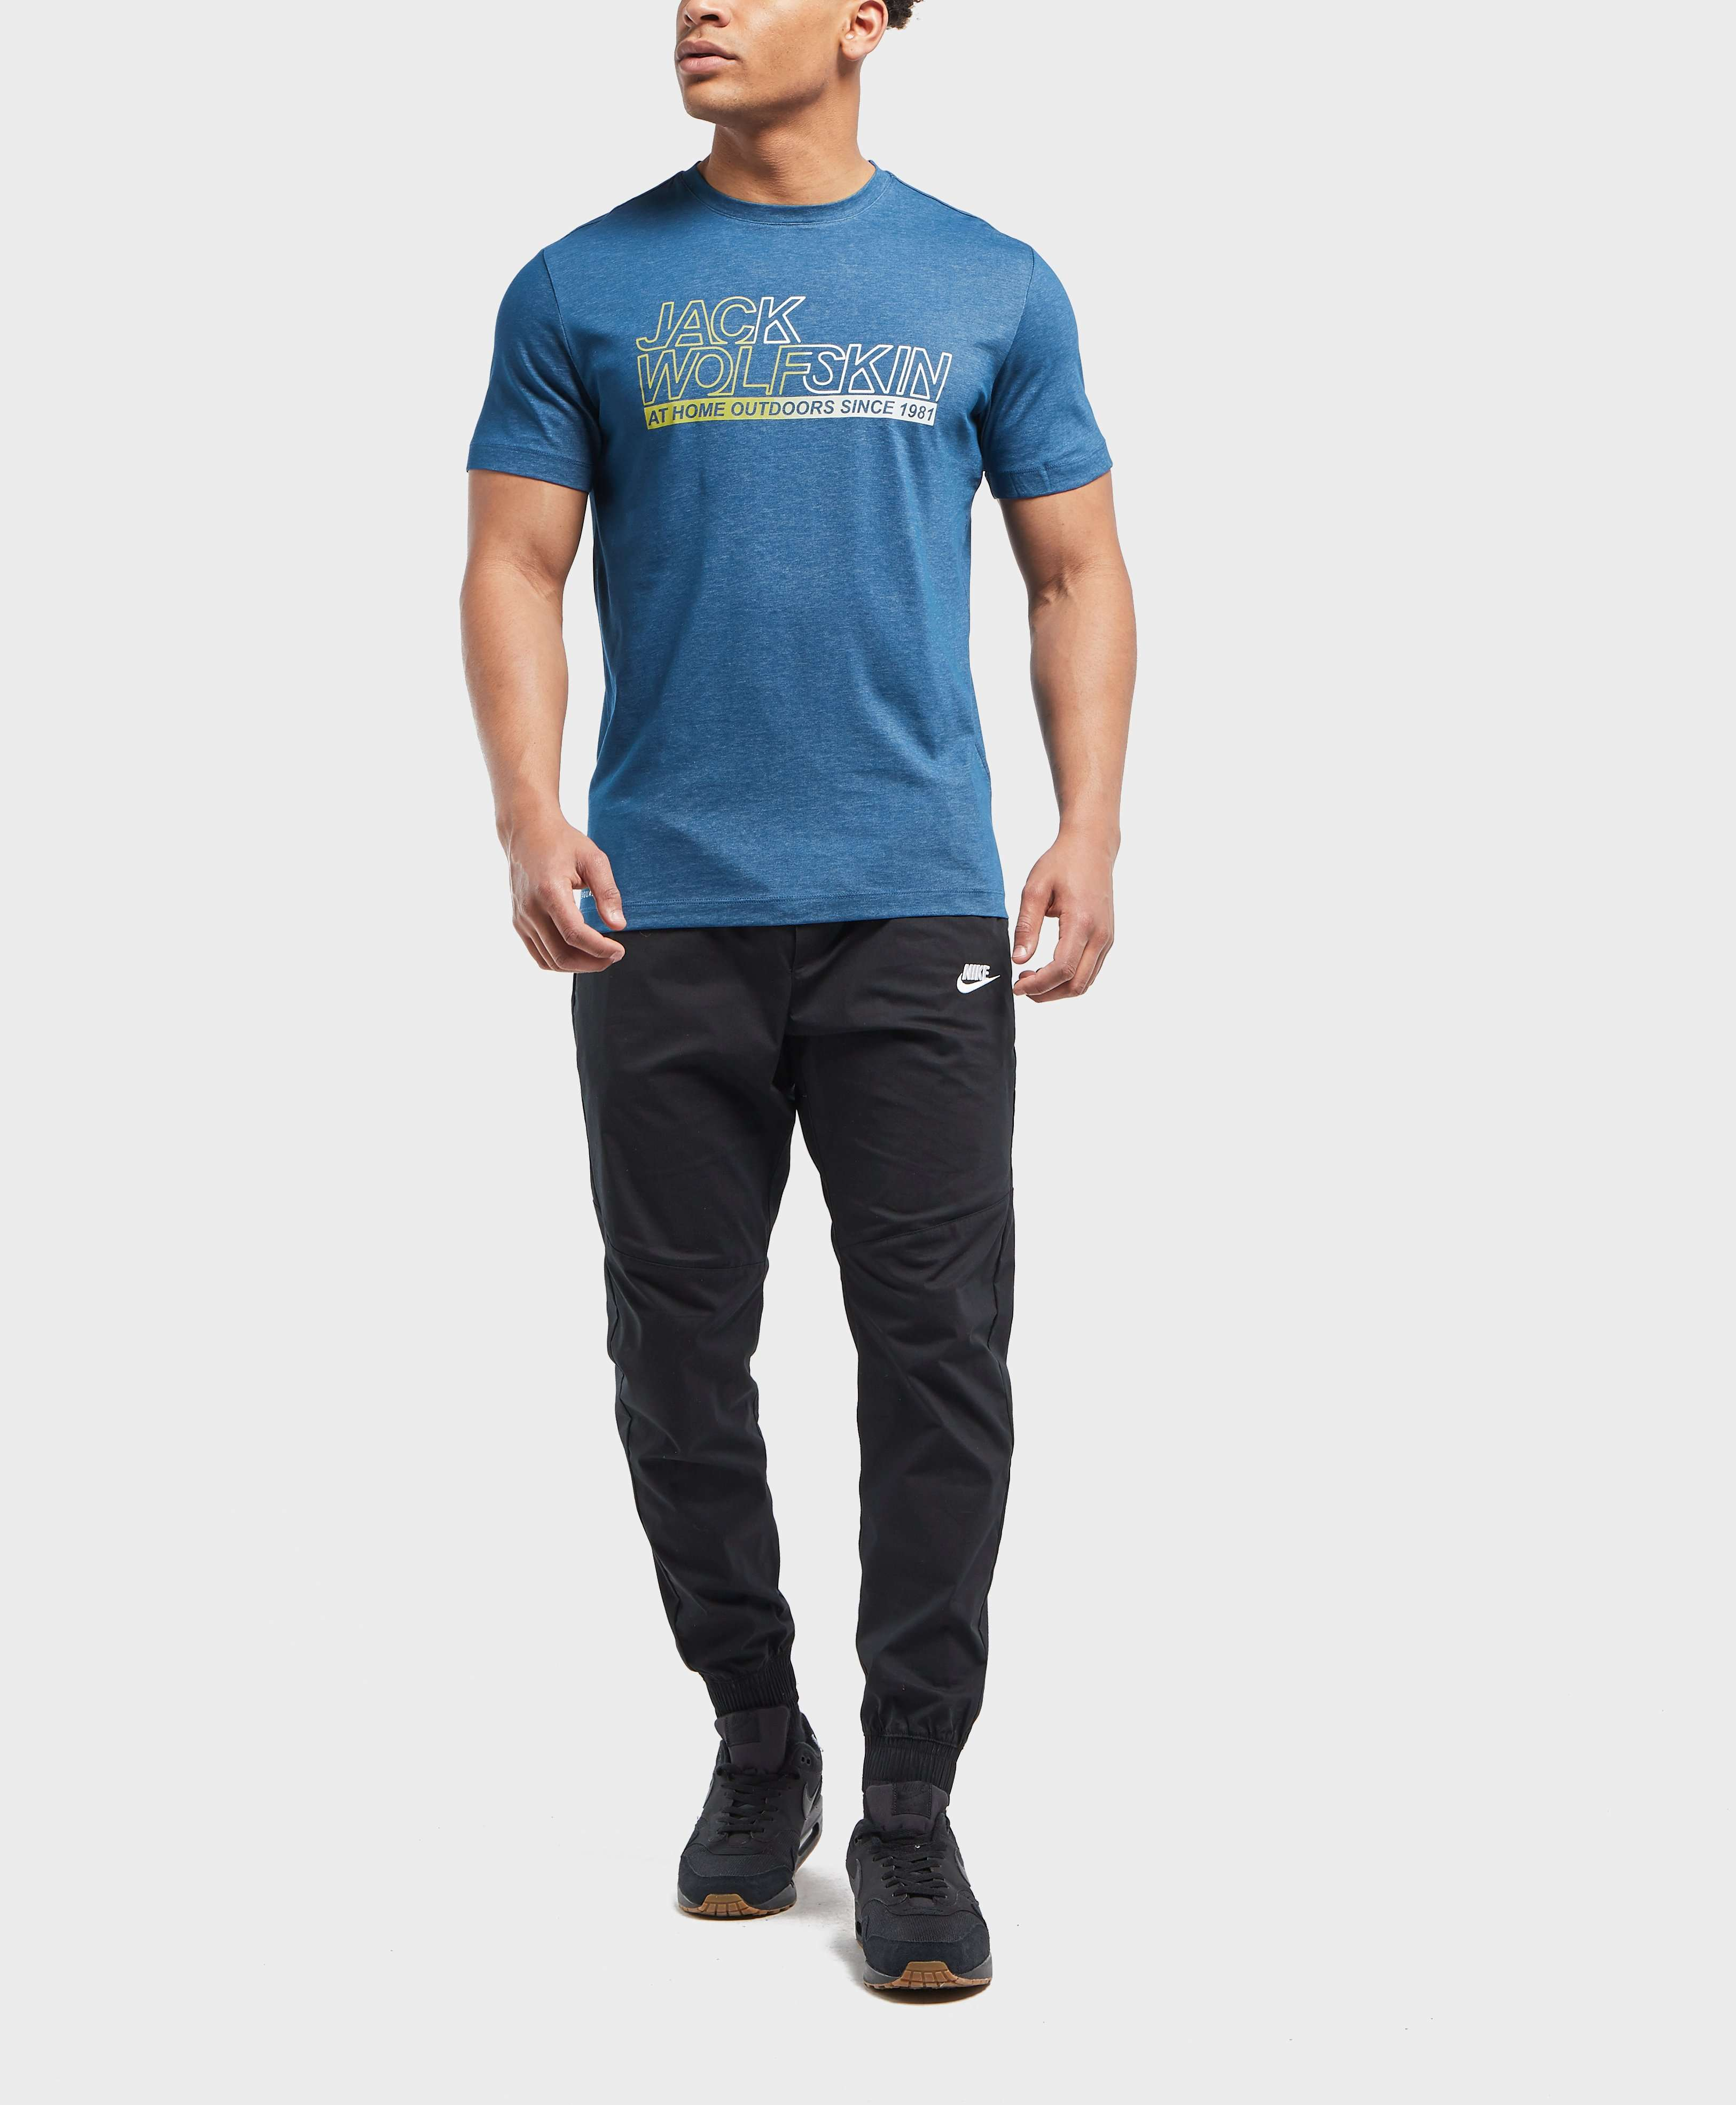 Jack Wolfskin Ocean Short Sleeve T-Shirt - Online Exclusive